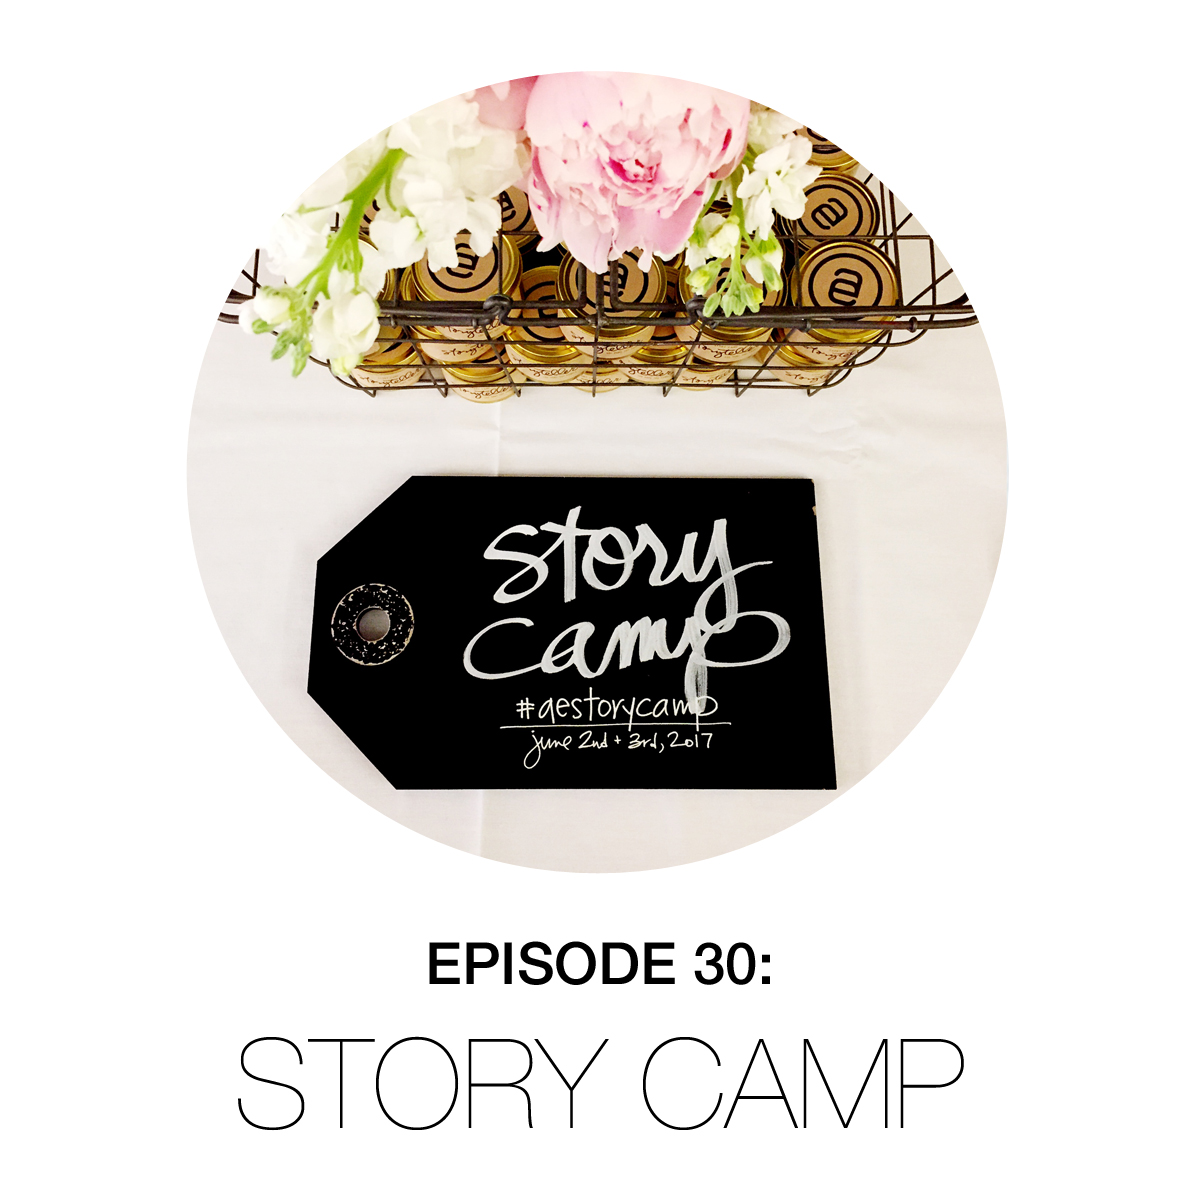 Episode 30: Story Camp